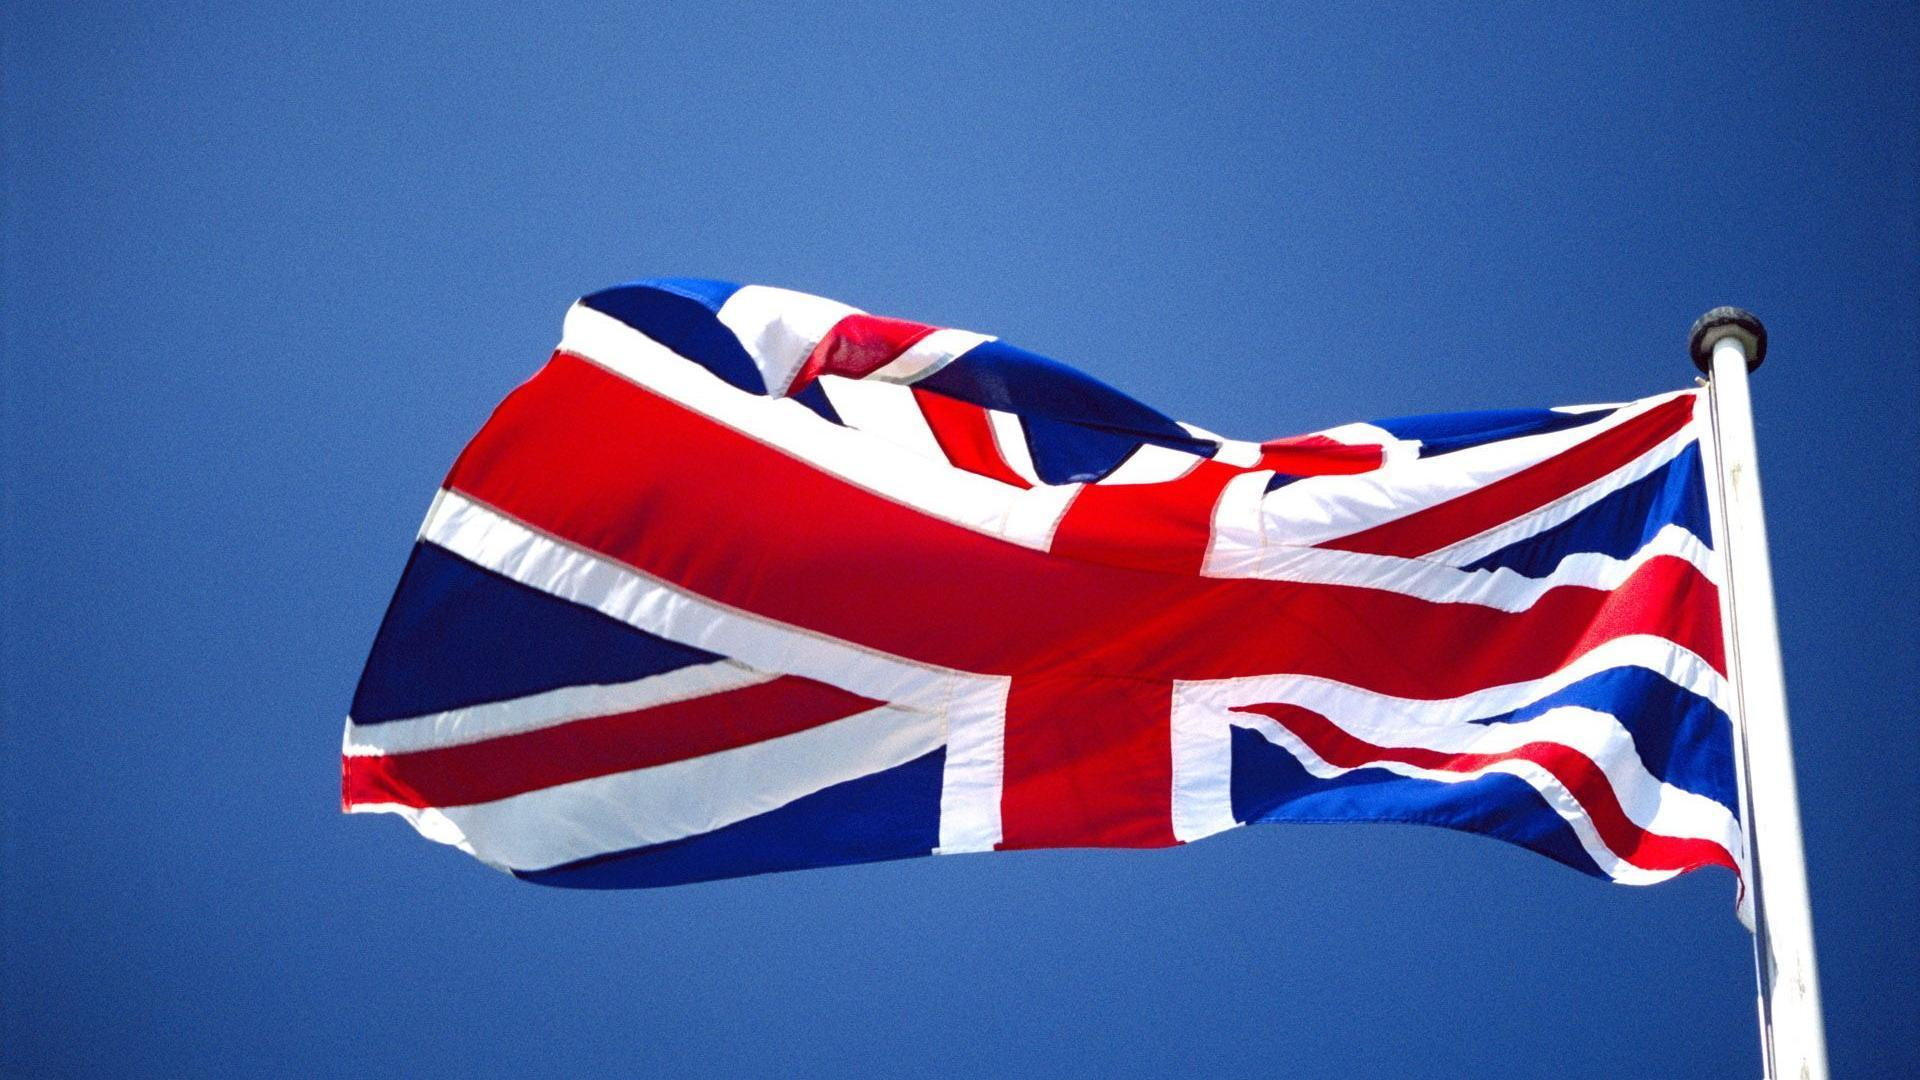 British Flag HD Wallpaper of Flag - hdwallpaper2013.com